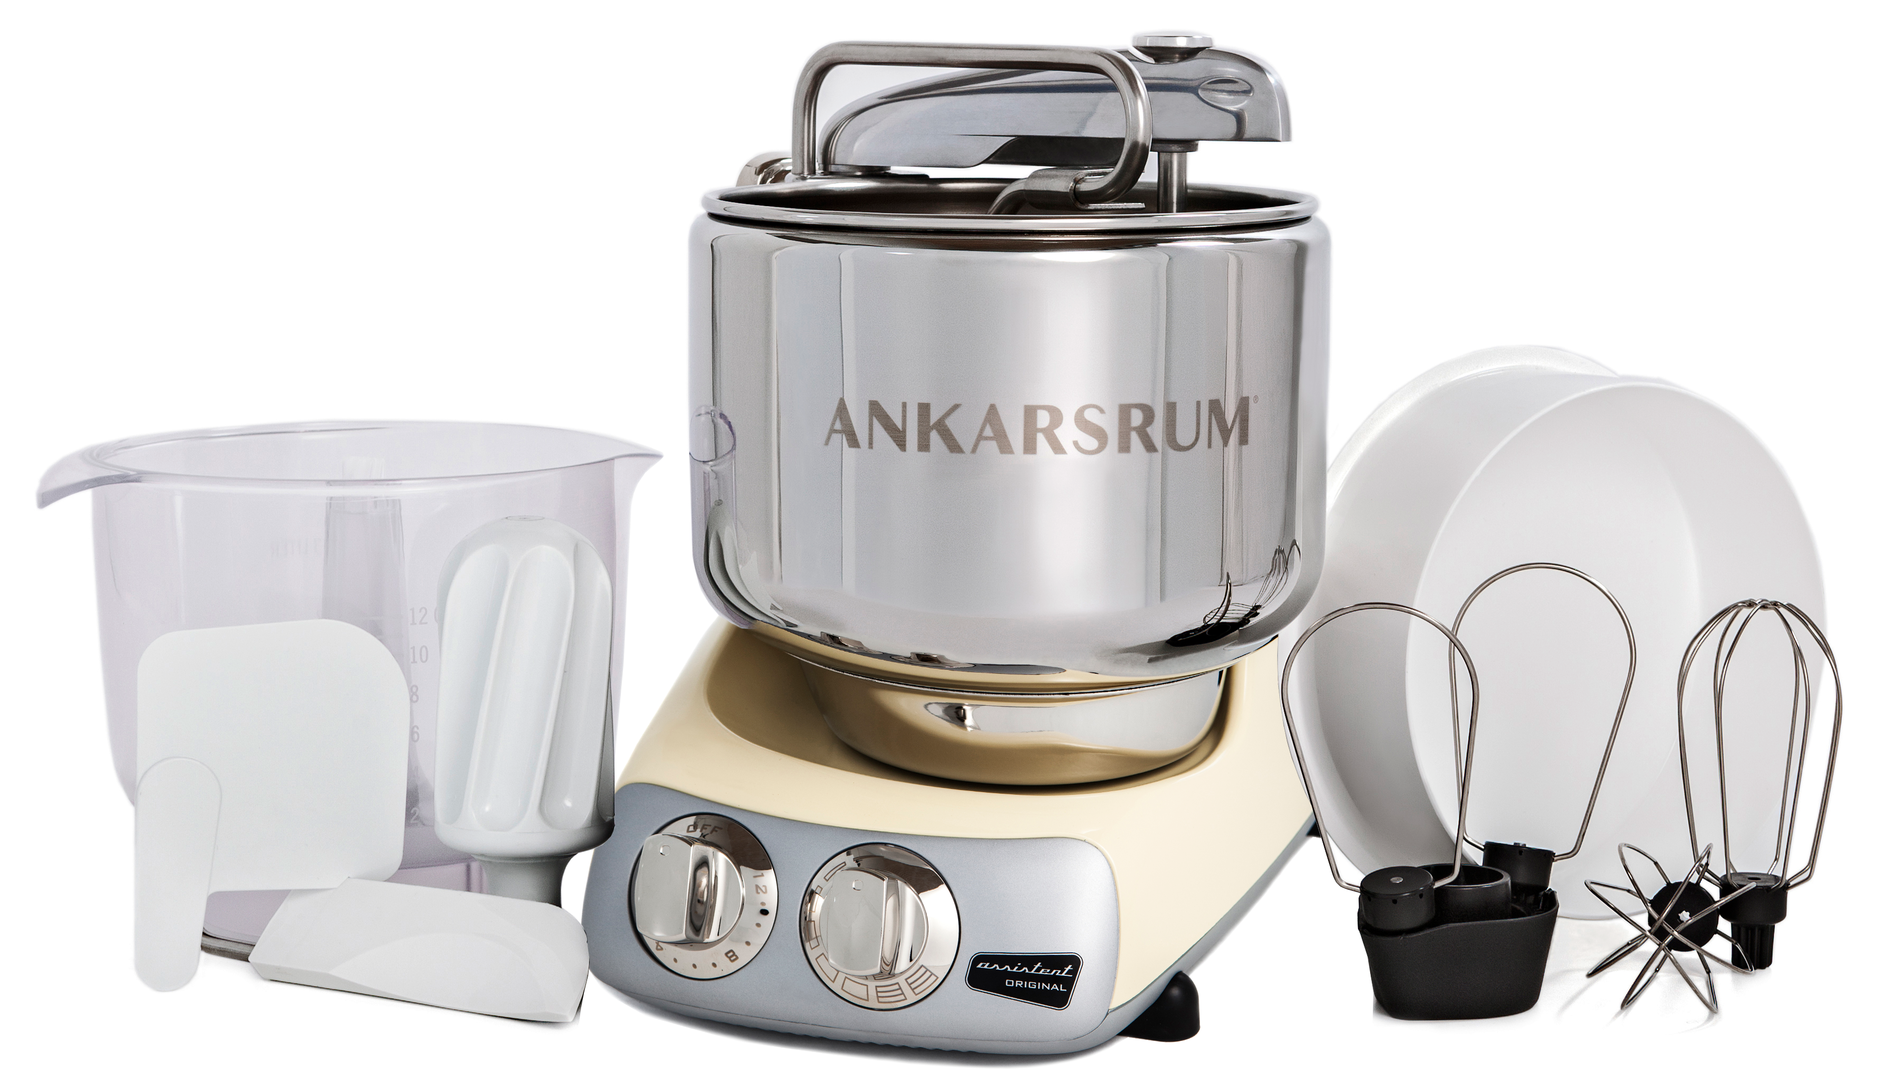 Ankarsrum Original Multifunction Mixer, Crème (2300106)